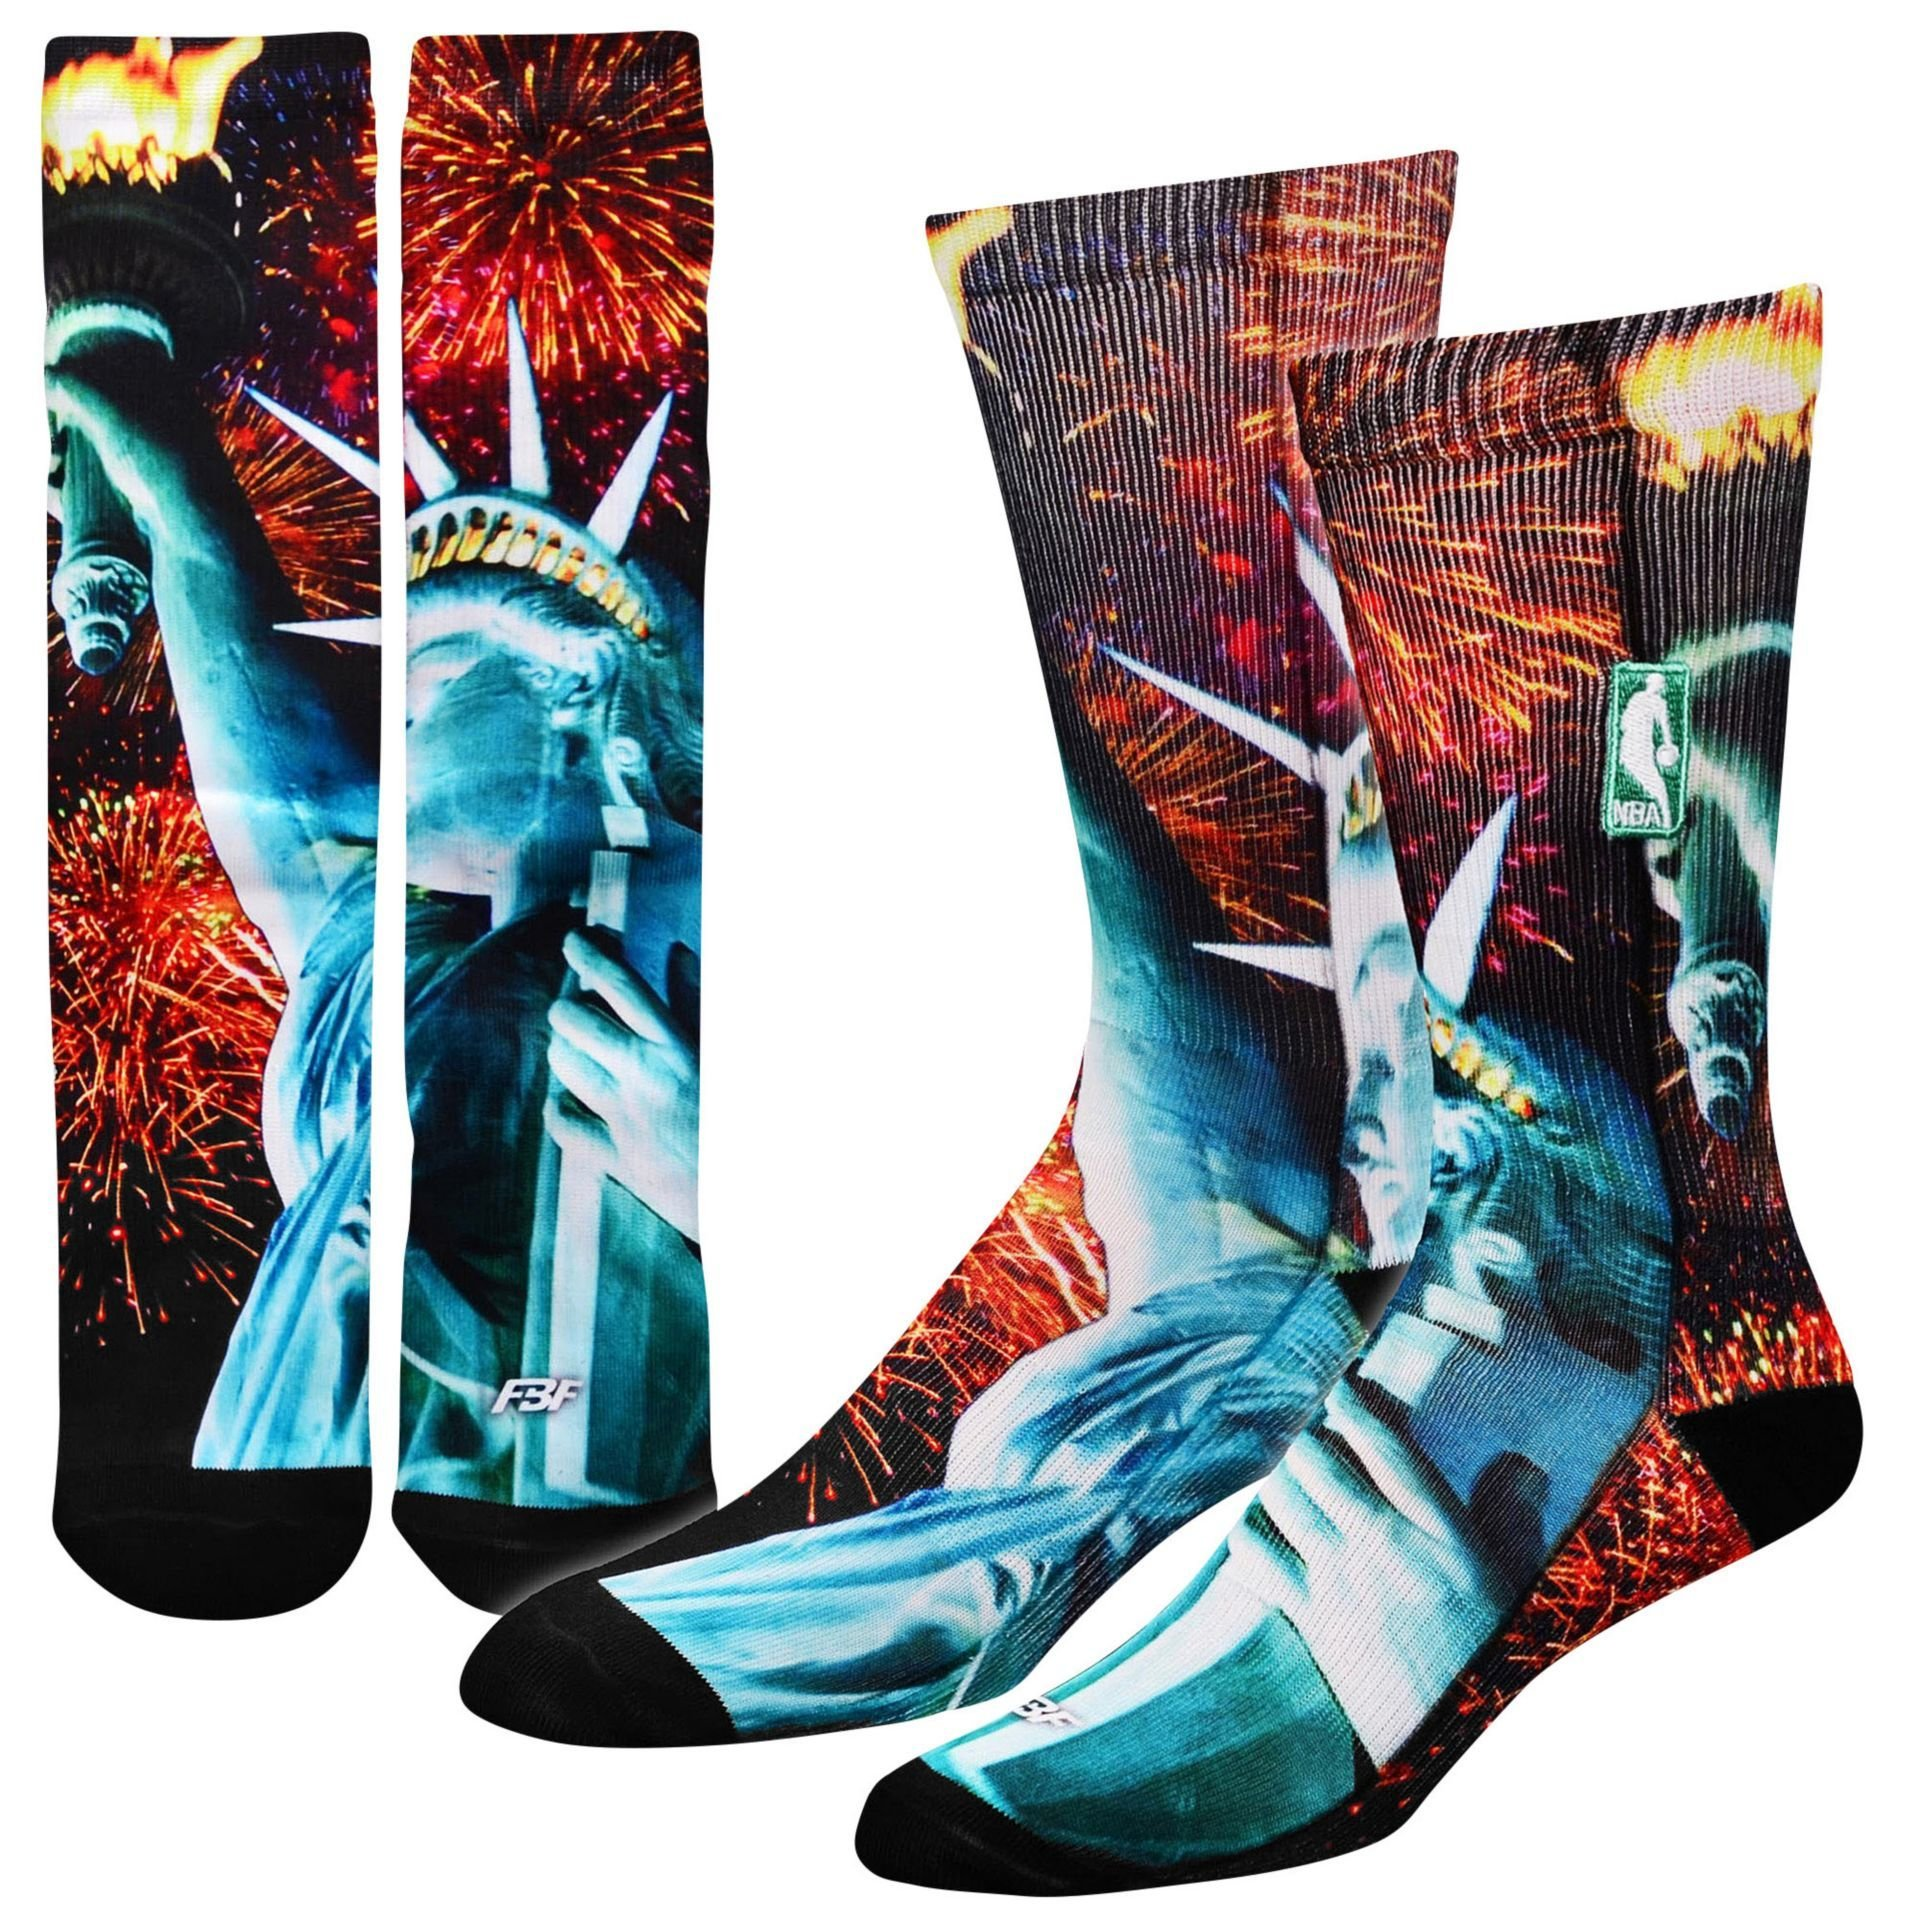 FBF Men's For Bare Feet NBA Sublimated Crew Socks Large (10-13) Statue Of Liberty